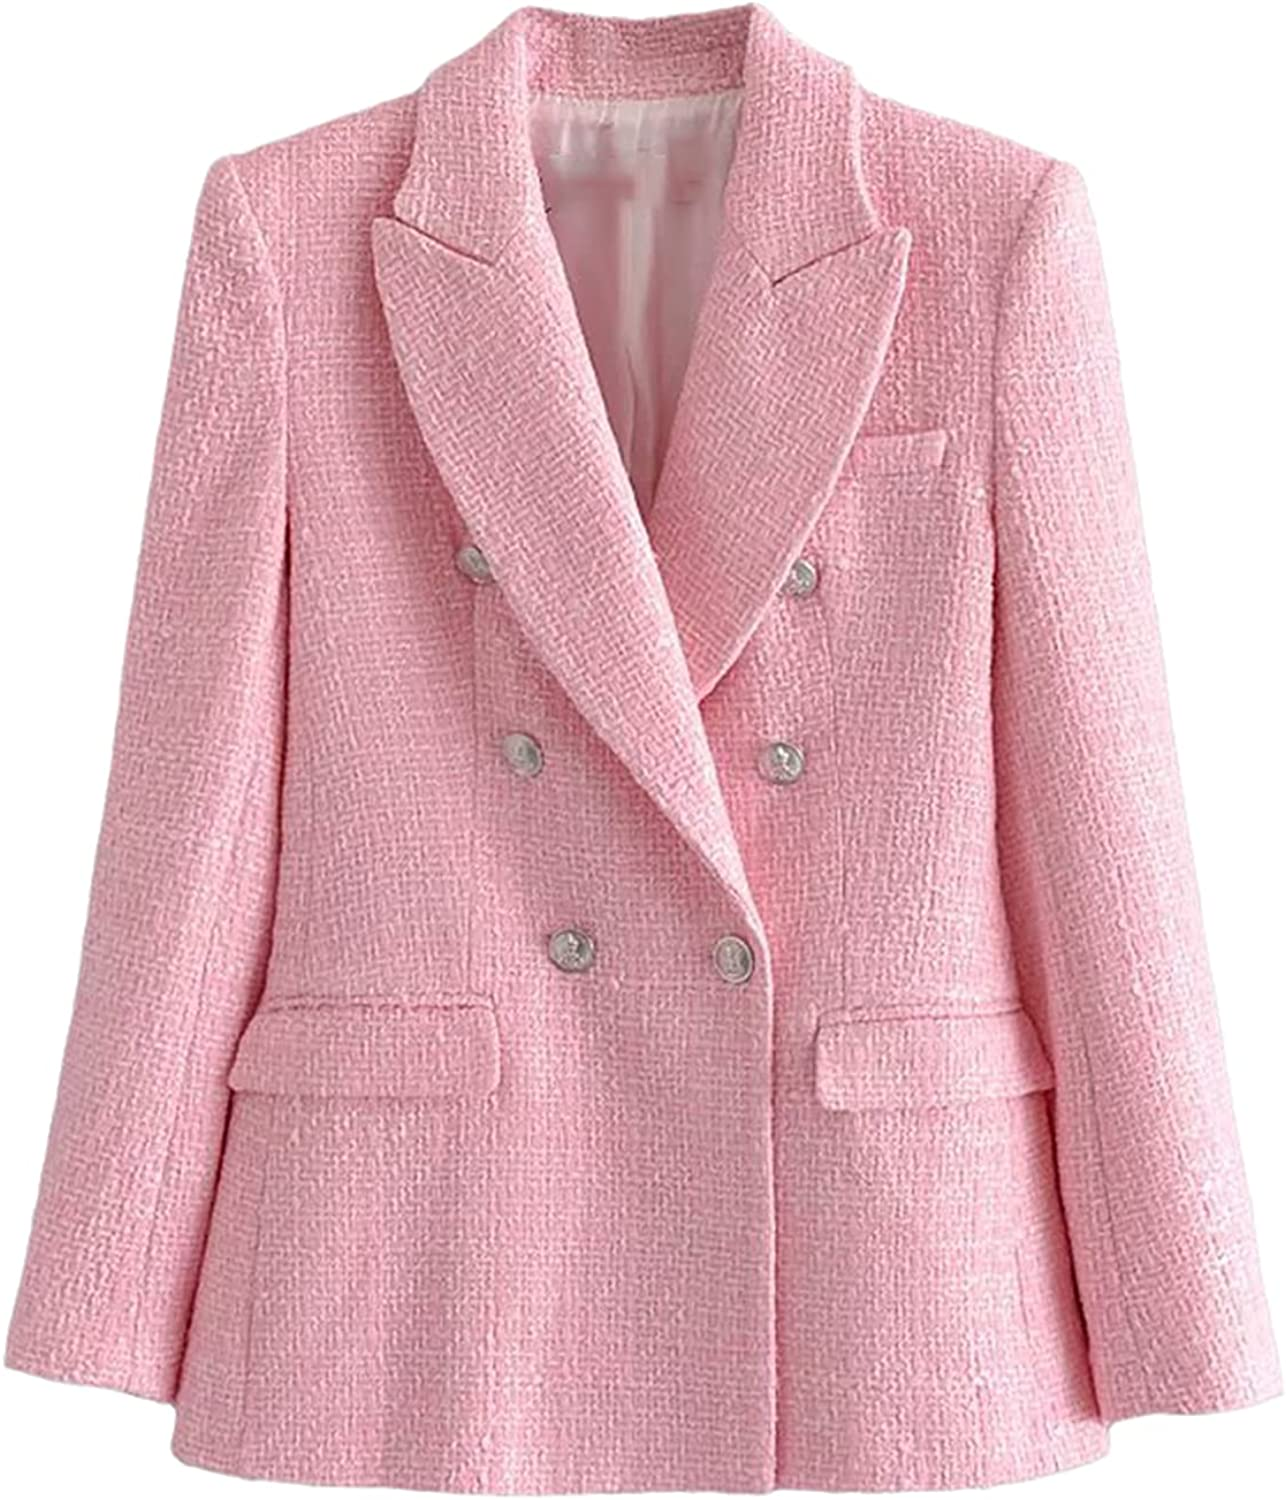 Women Two Pieces Set Tweed Textured Blazer and Shorts Suit Fashion Casual Chic Lady Outfits Suit